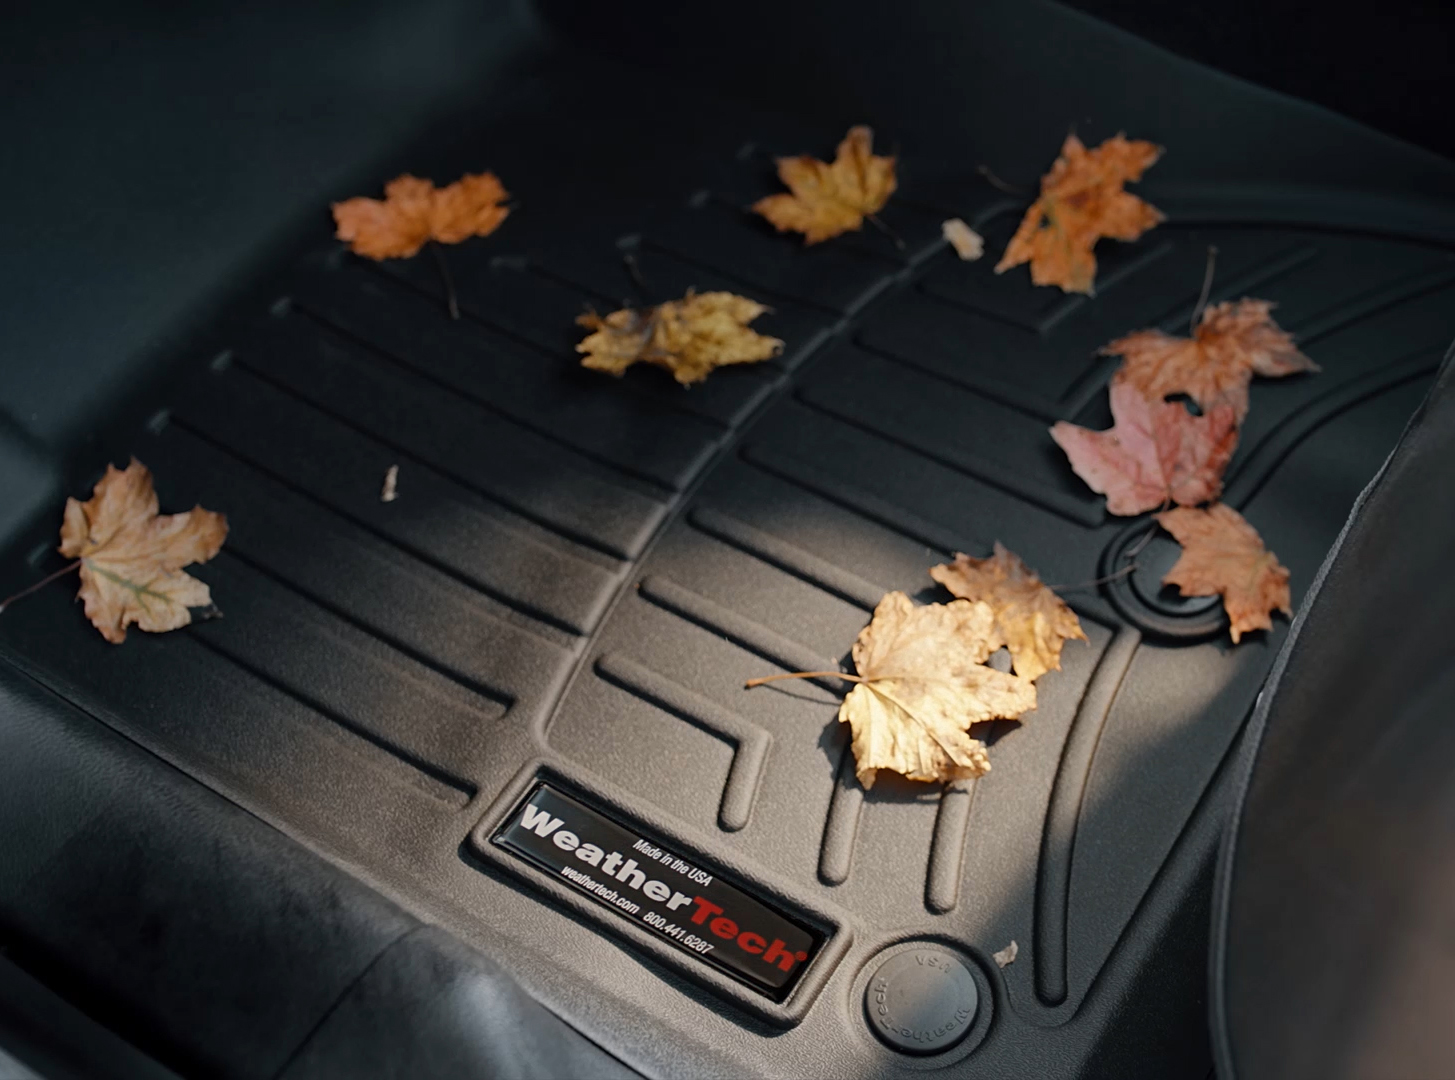 Useful Automotive Accessories for Fall